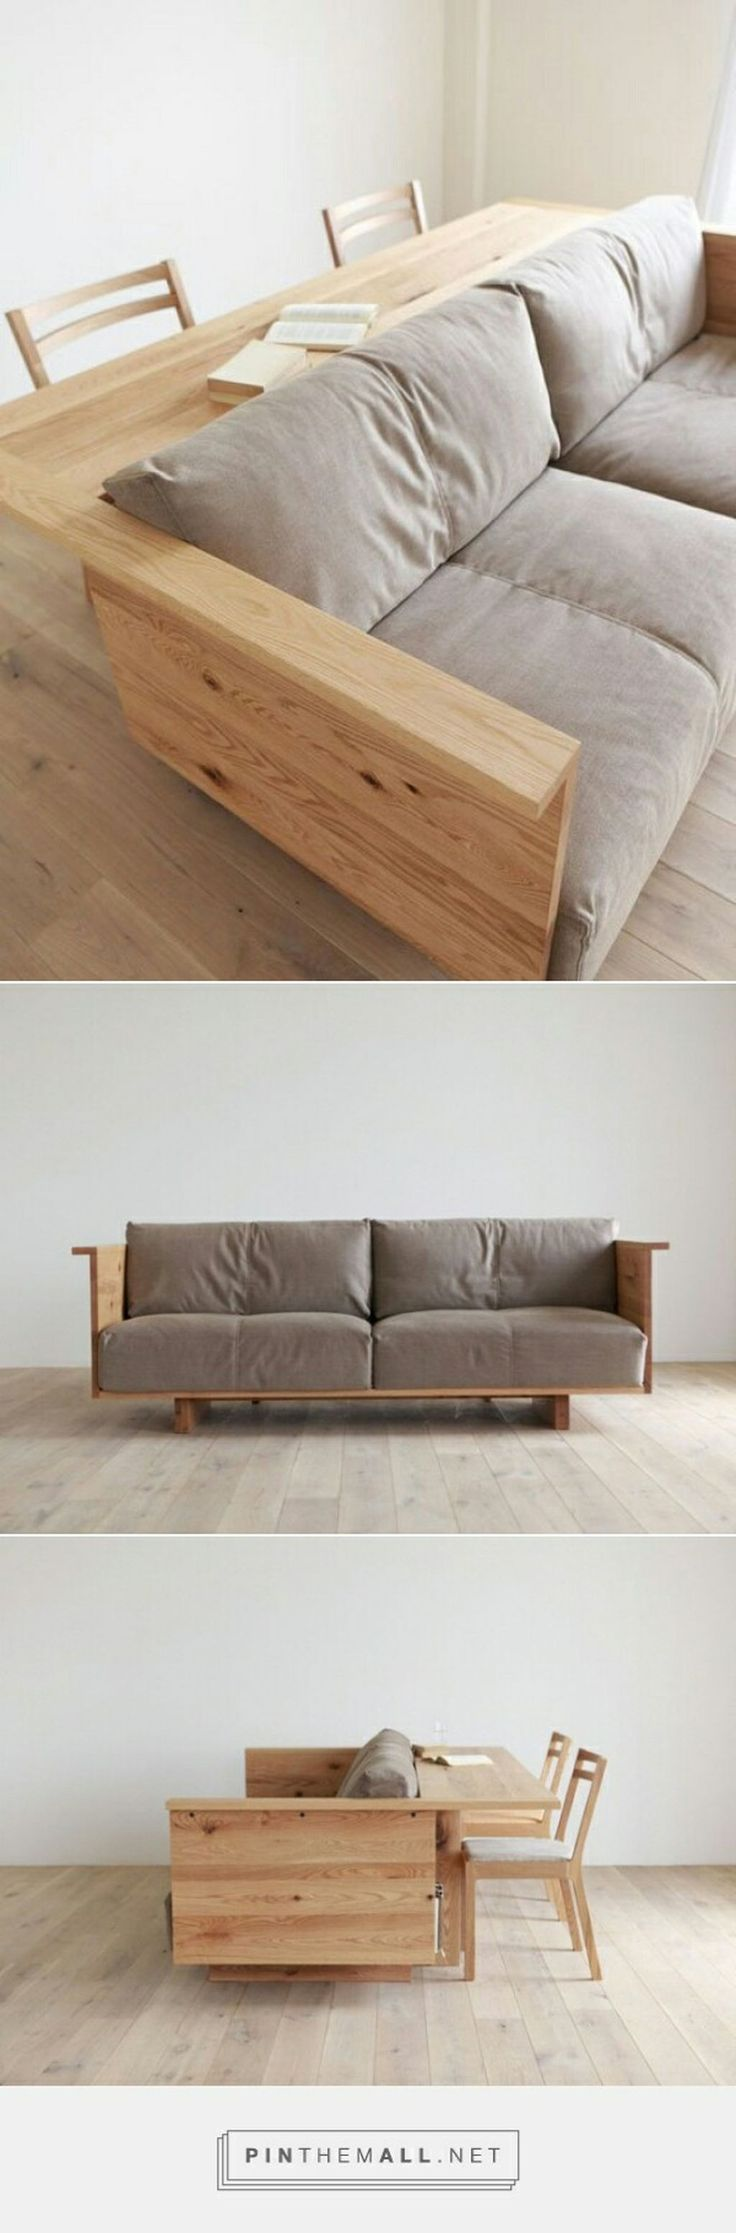 Awesome 99 Inspiring and Affordable Decoration Ideas for Small Apartment. More at http://99homy.com/2017/10/08/99-inspiring-and-affordable-decoration-ideas-for-small-apartment/